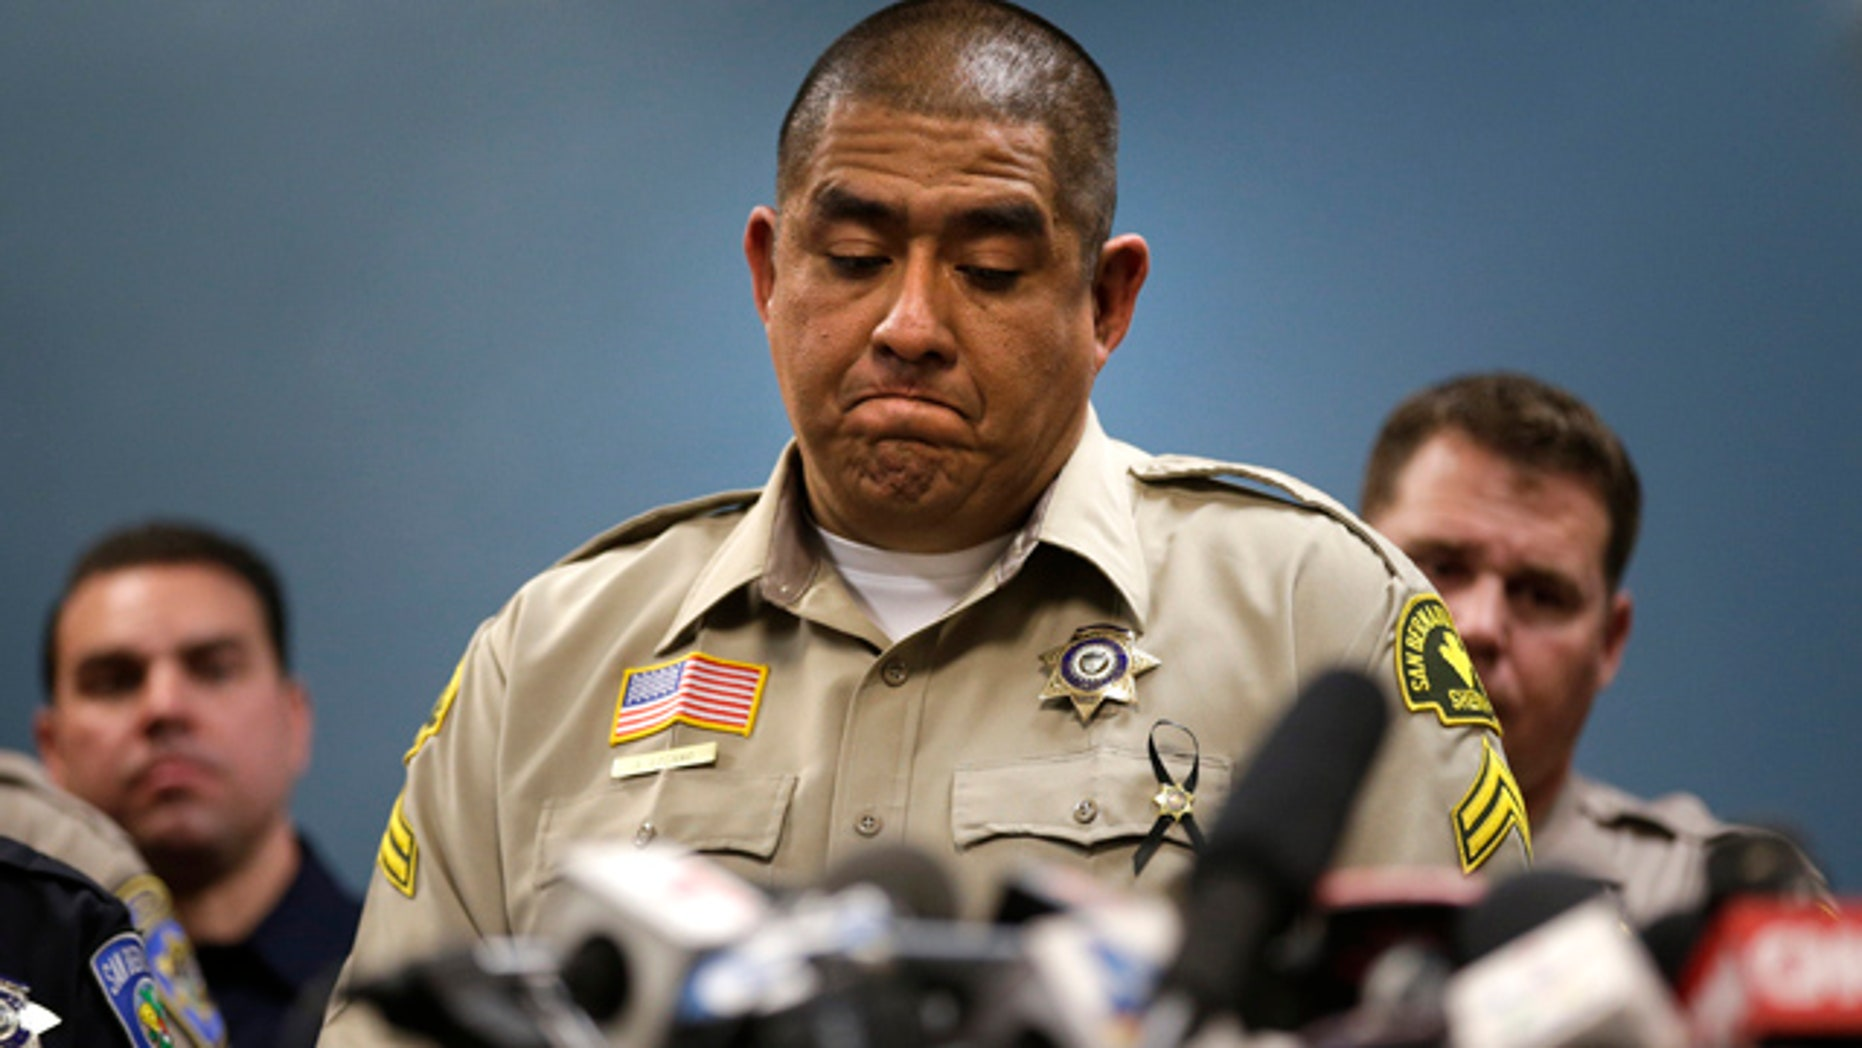 Dec. 8, 2015: San Bernardino County (Calif.) Sheriff's detective Jorge Lozano, center, pauses while answering questions during a news conference with the first responders on the scene of last week's fatal shooting at a social services center. (AP Photo/Jae C. Hong)